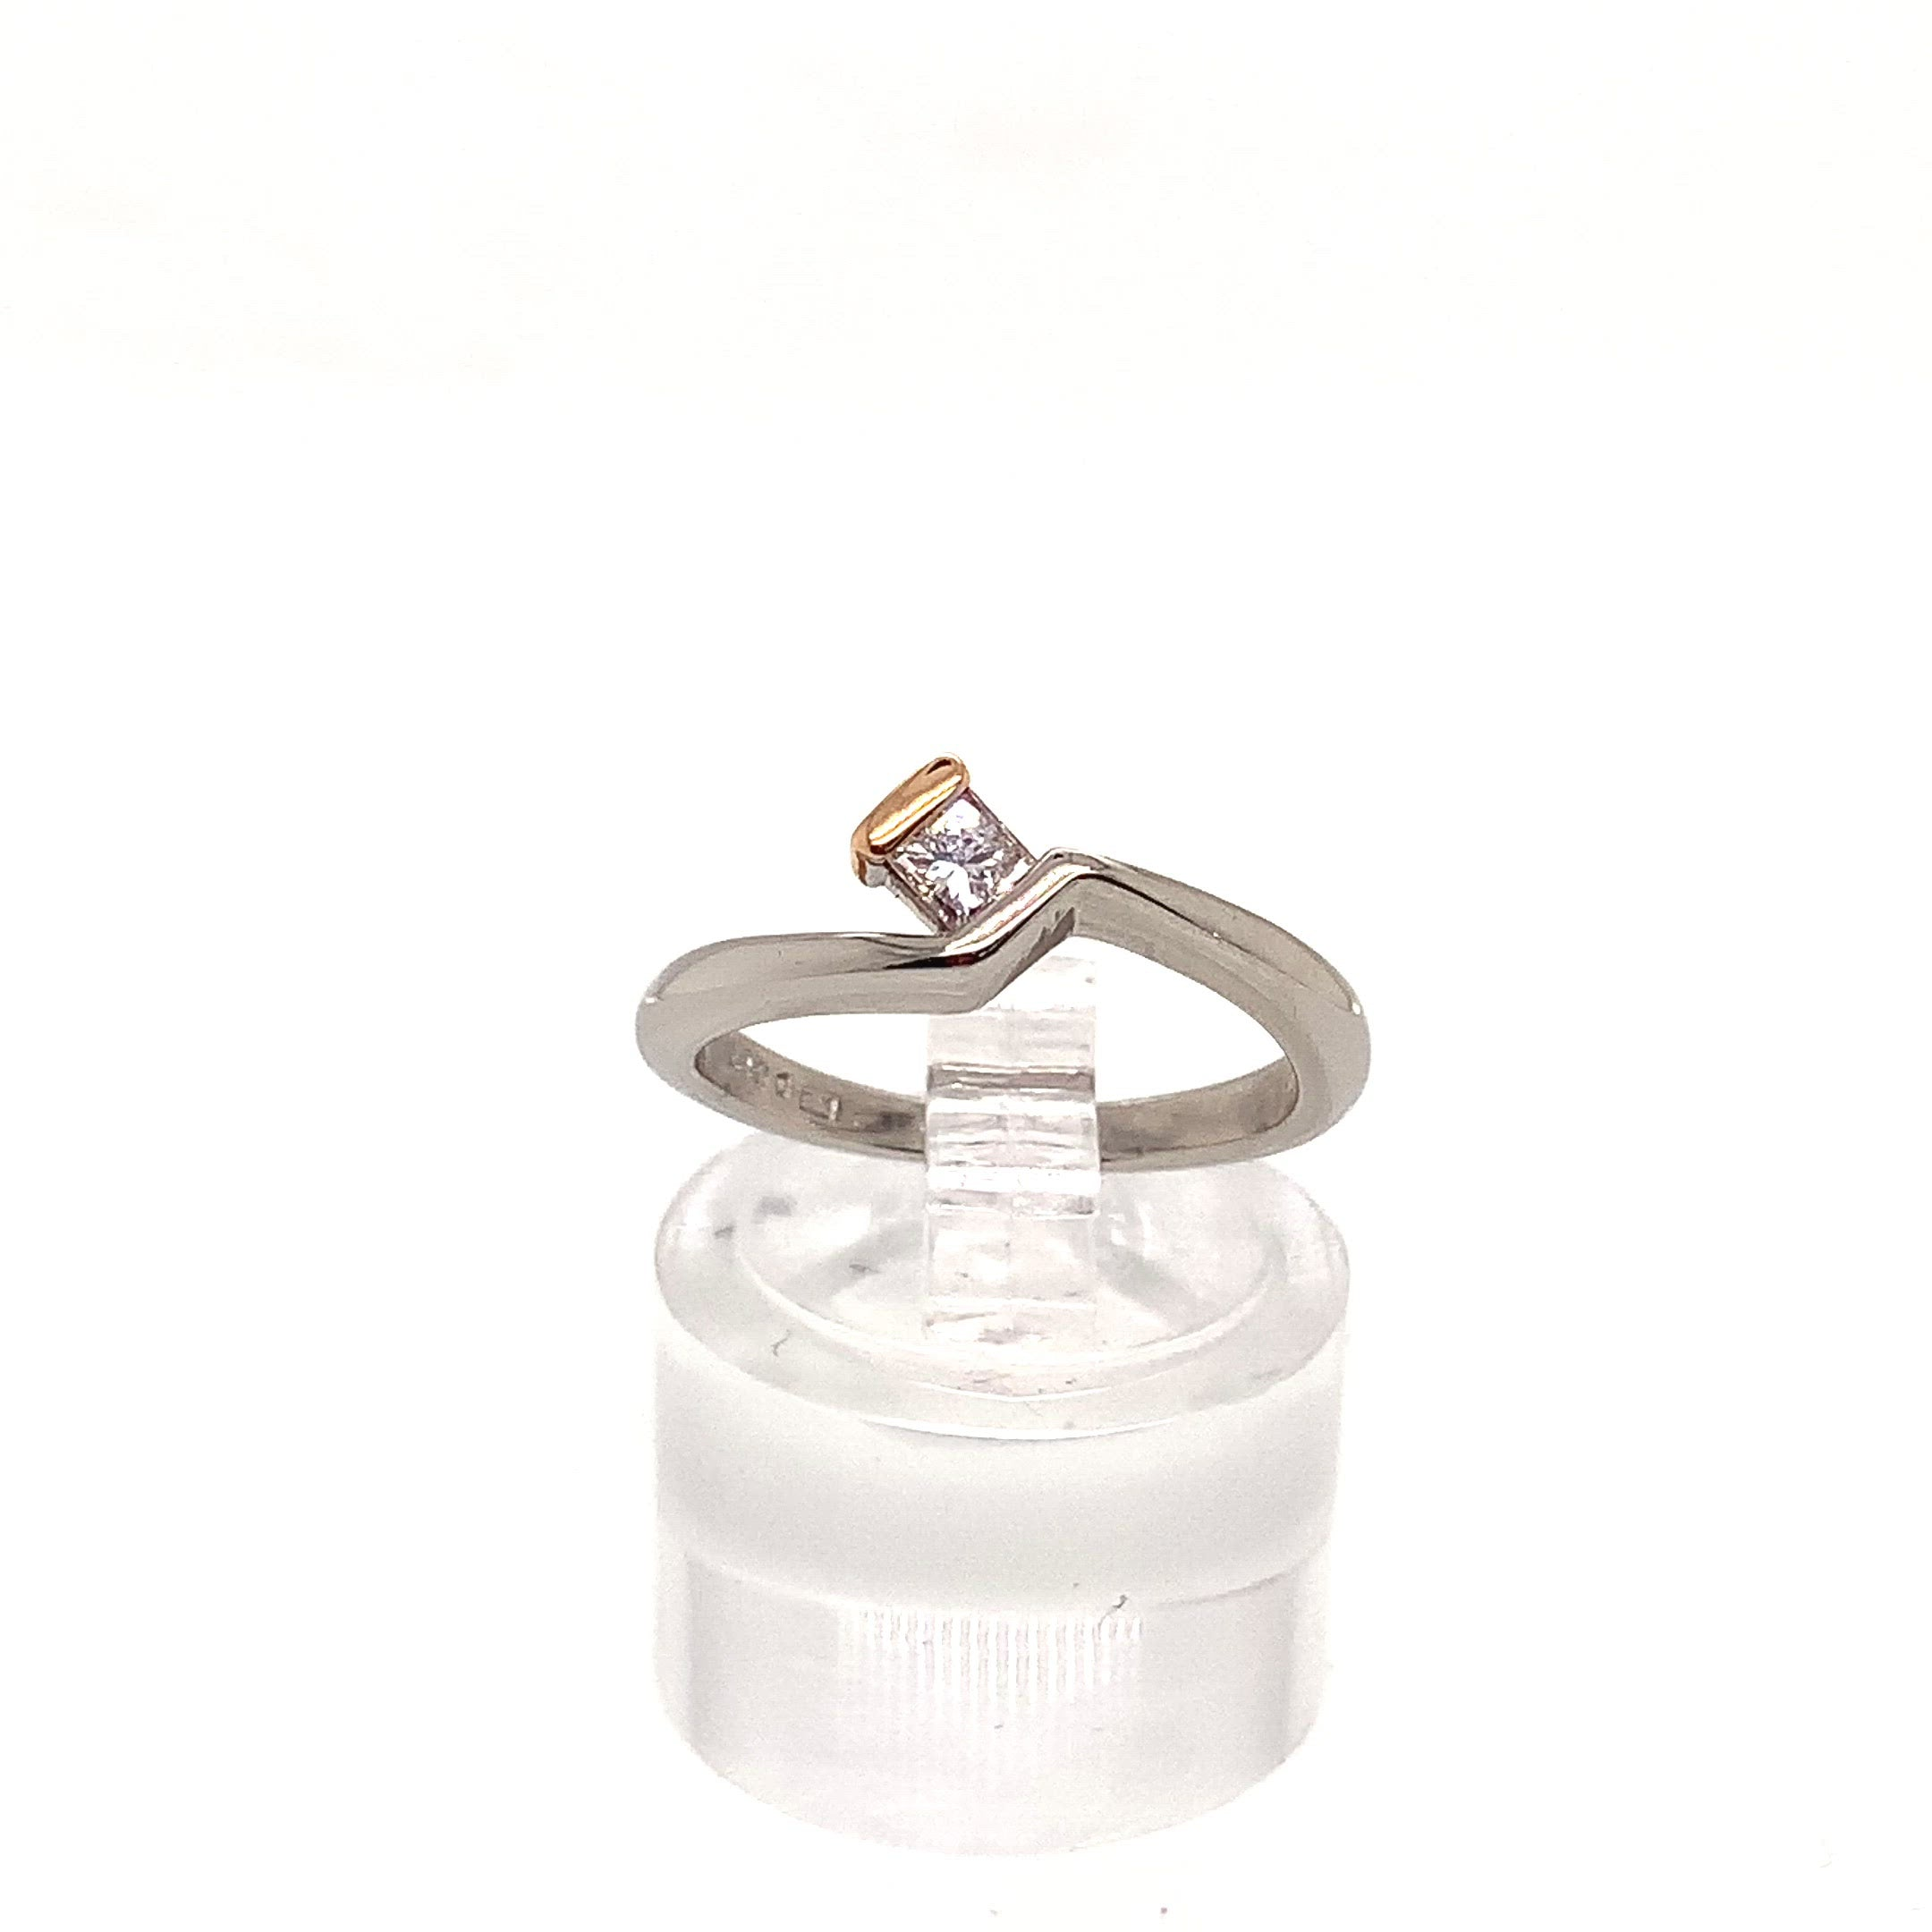 Princess Cut Solitaire Ring 18ct White Gold with Red Gold Detail 0.17ct